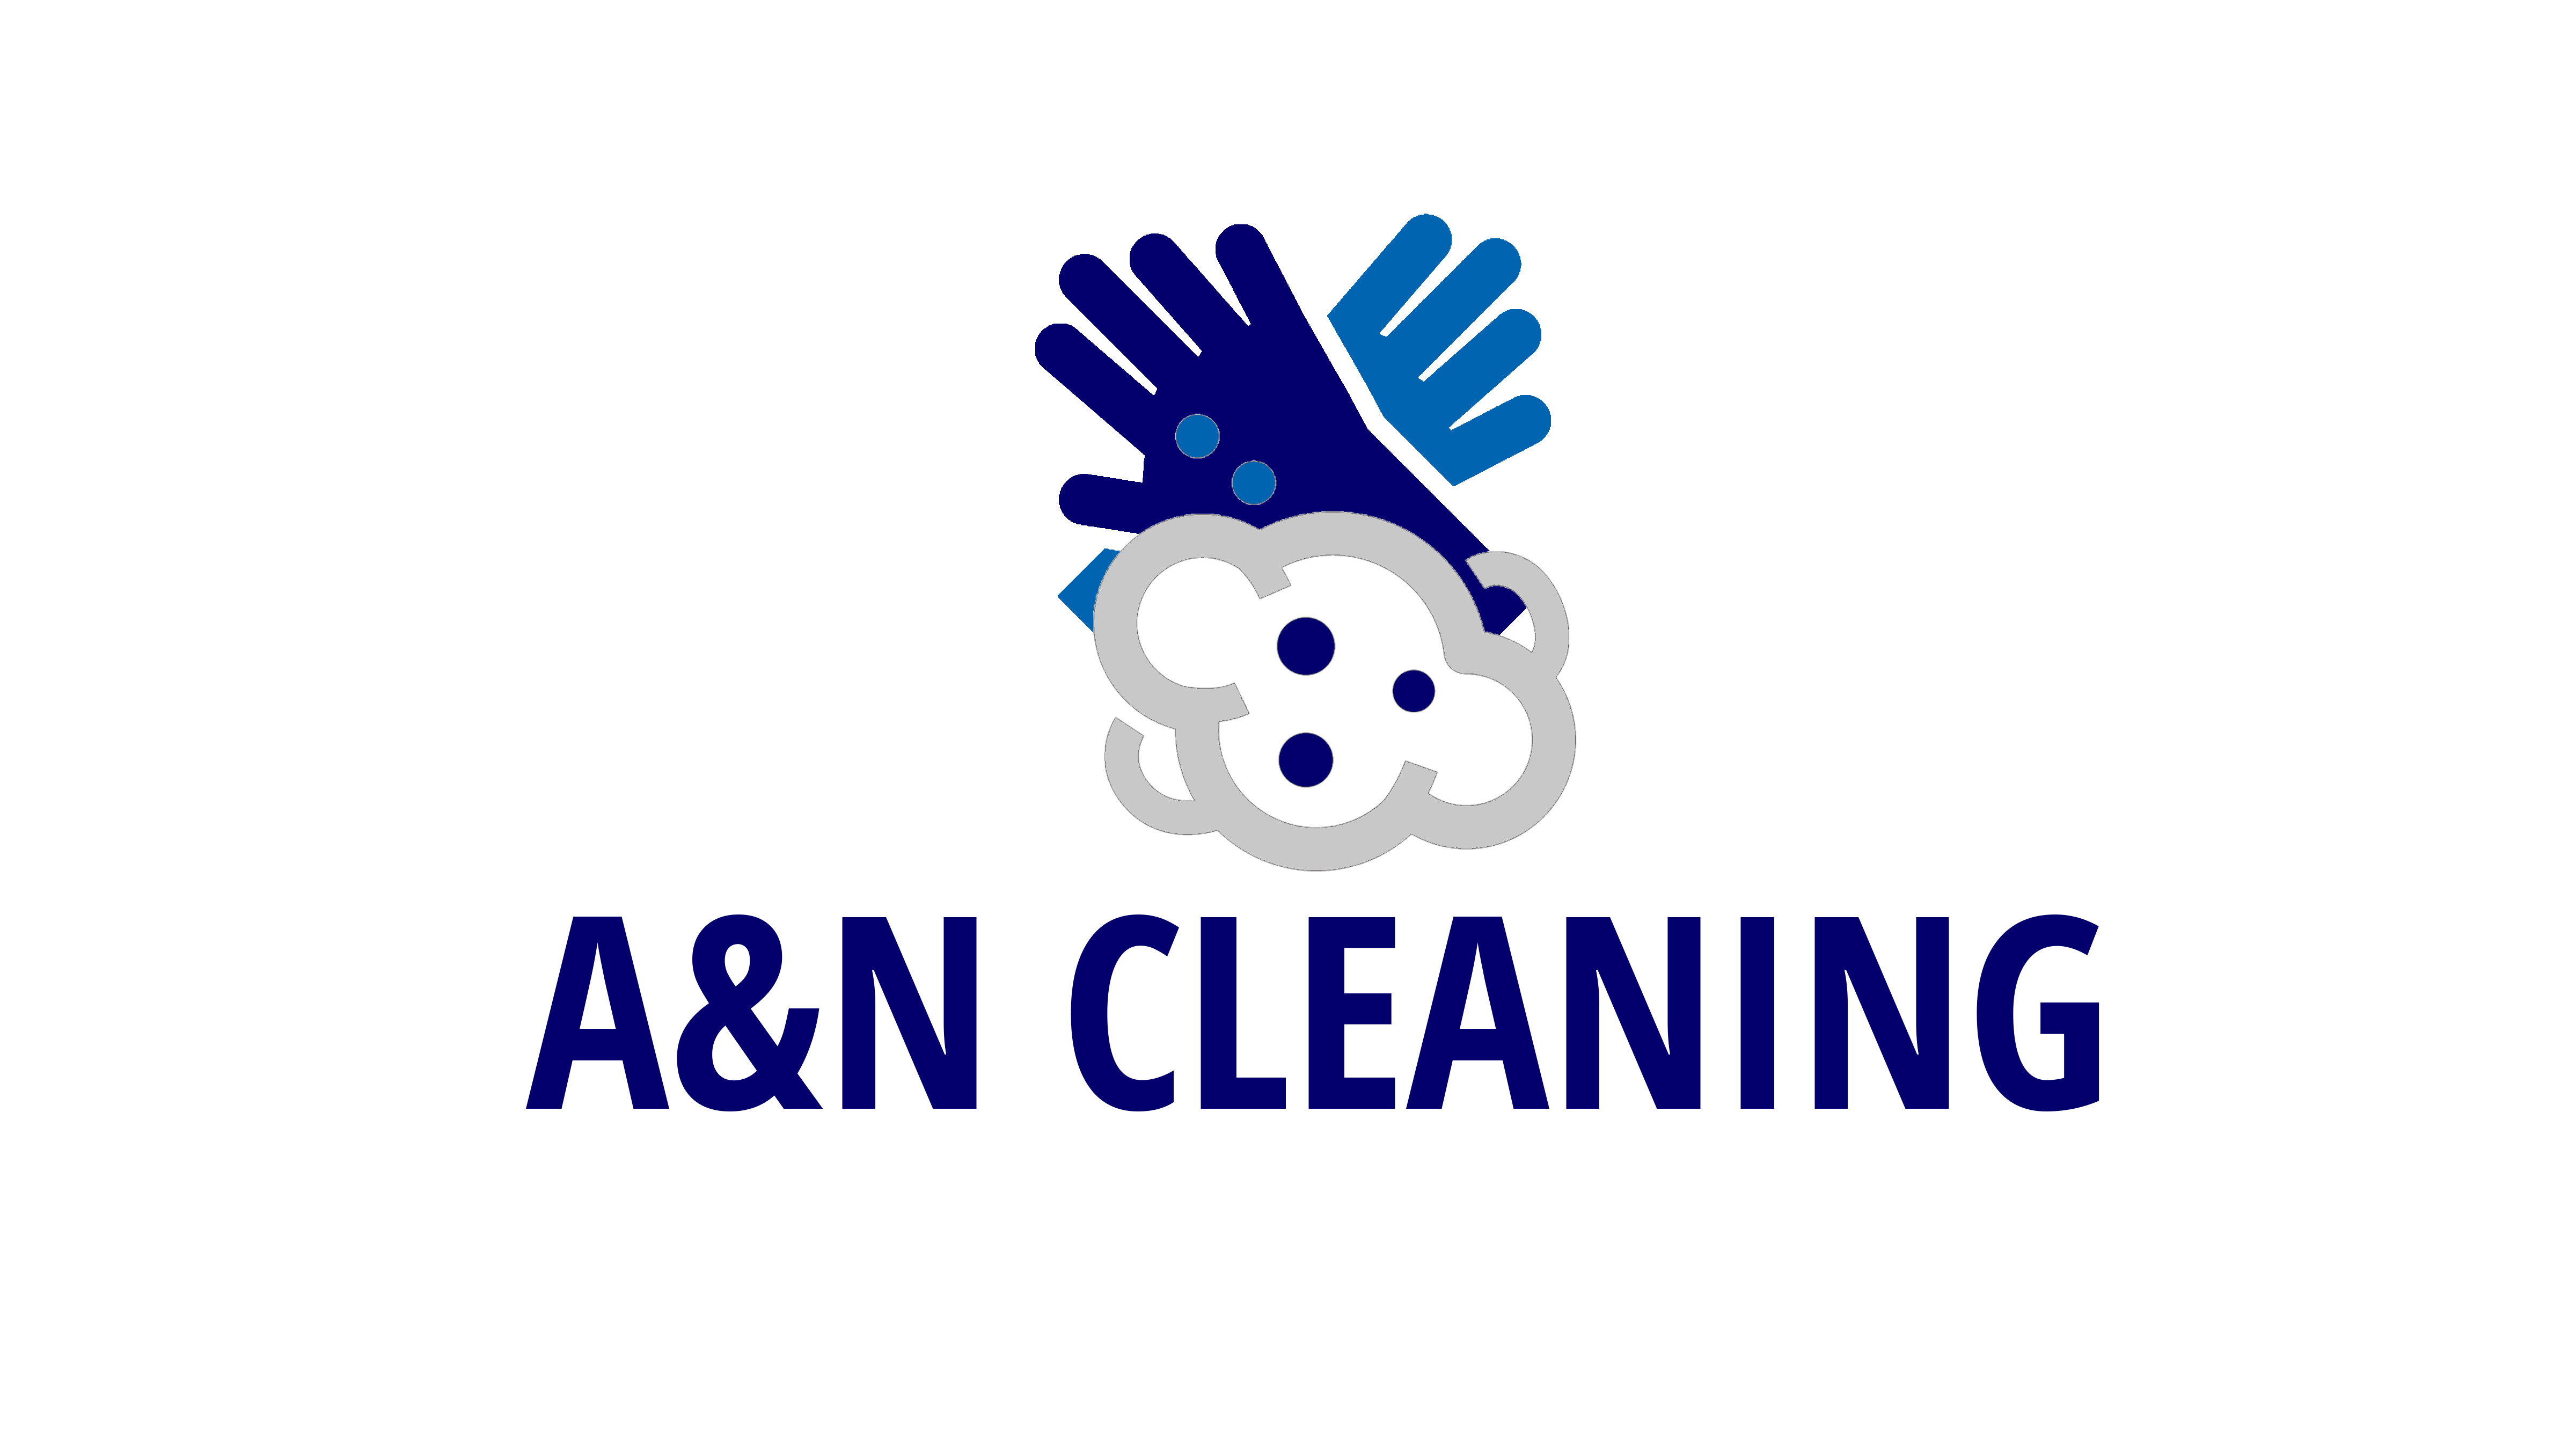 A&N Cleaning Co. logo